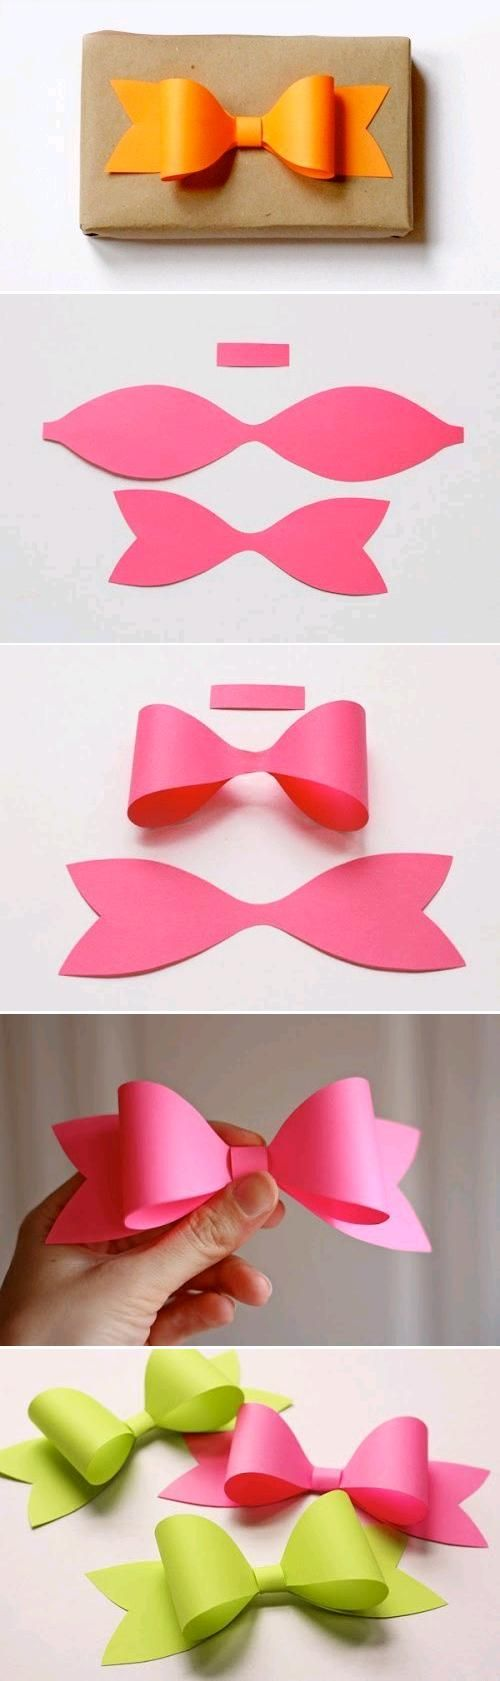 Paper Bows, great for gift wrapping.